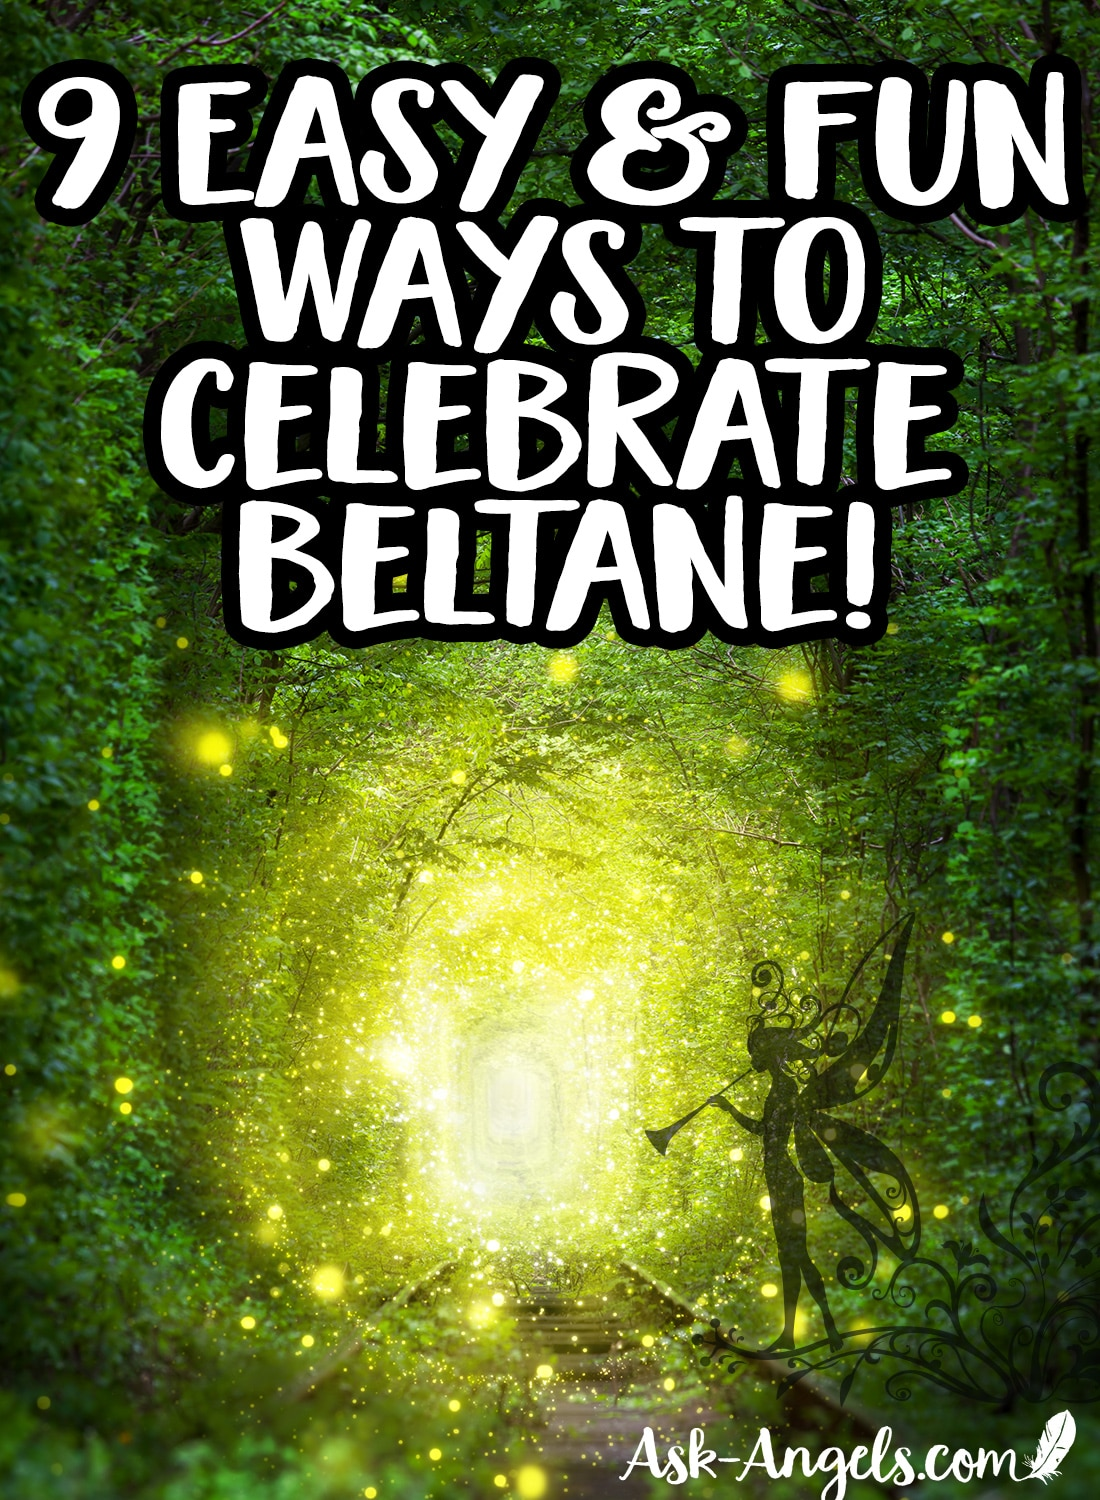 9 Easy & fun ways to celebrate beltane!